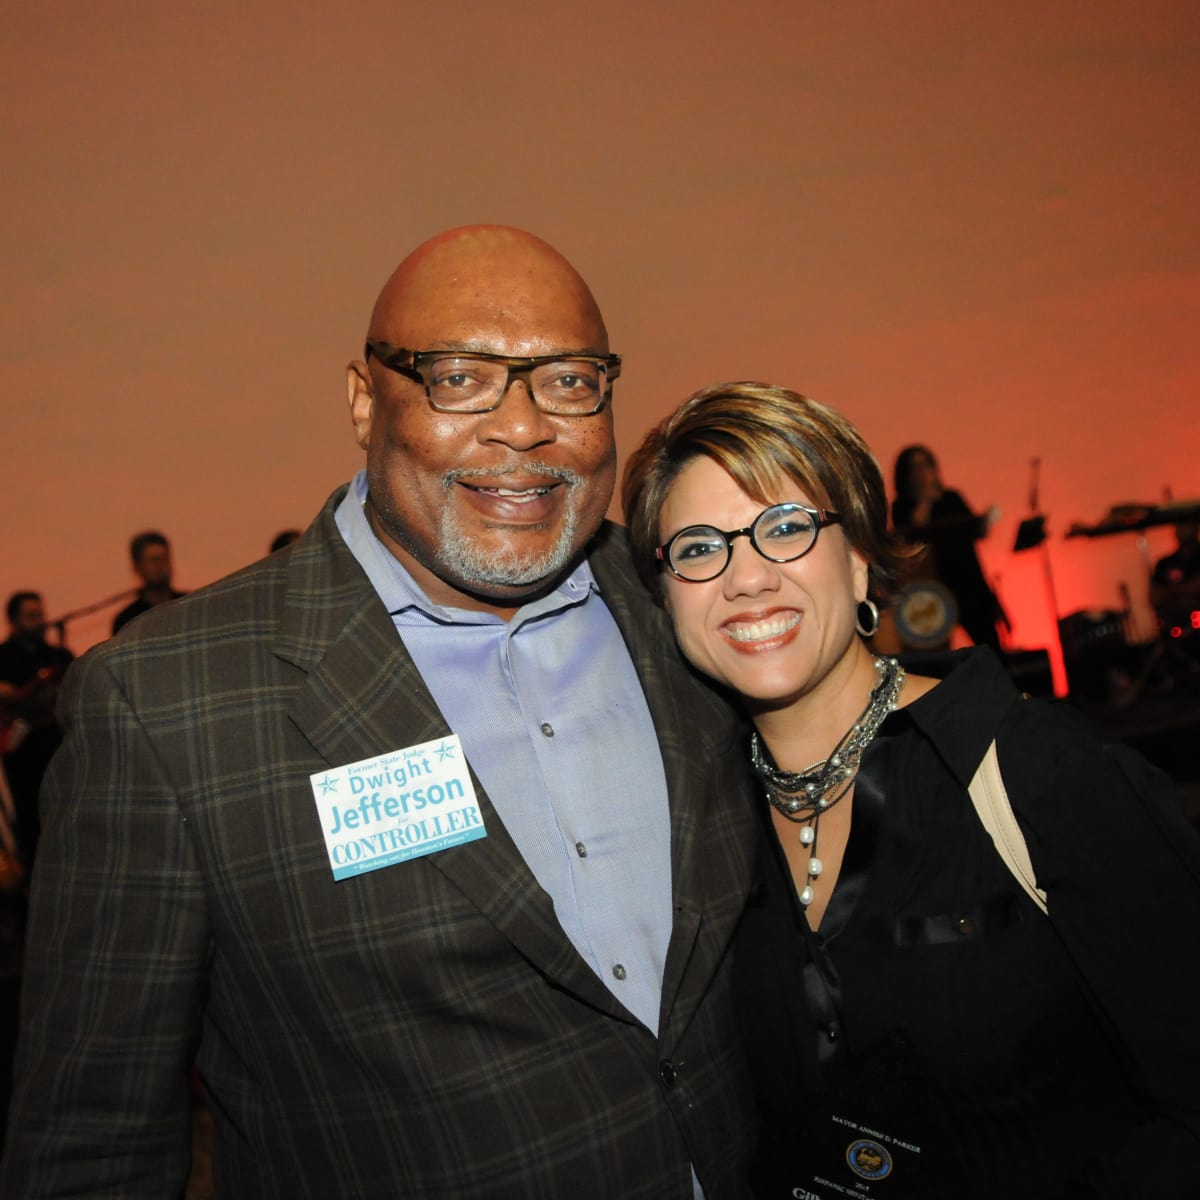 News, Shelby, Mayor's Hispanic Heritage Awards, Oct. 2015, Dwight Jefferson, Dee Dee Garcia